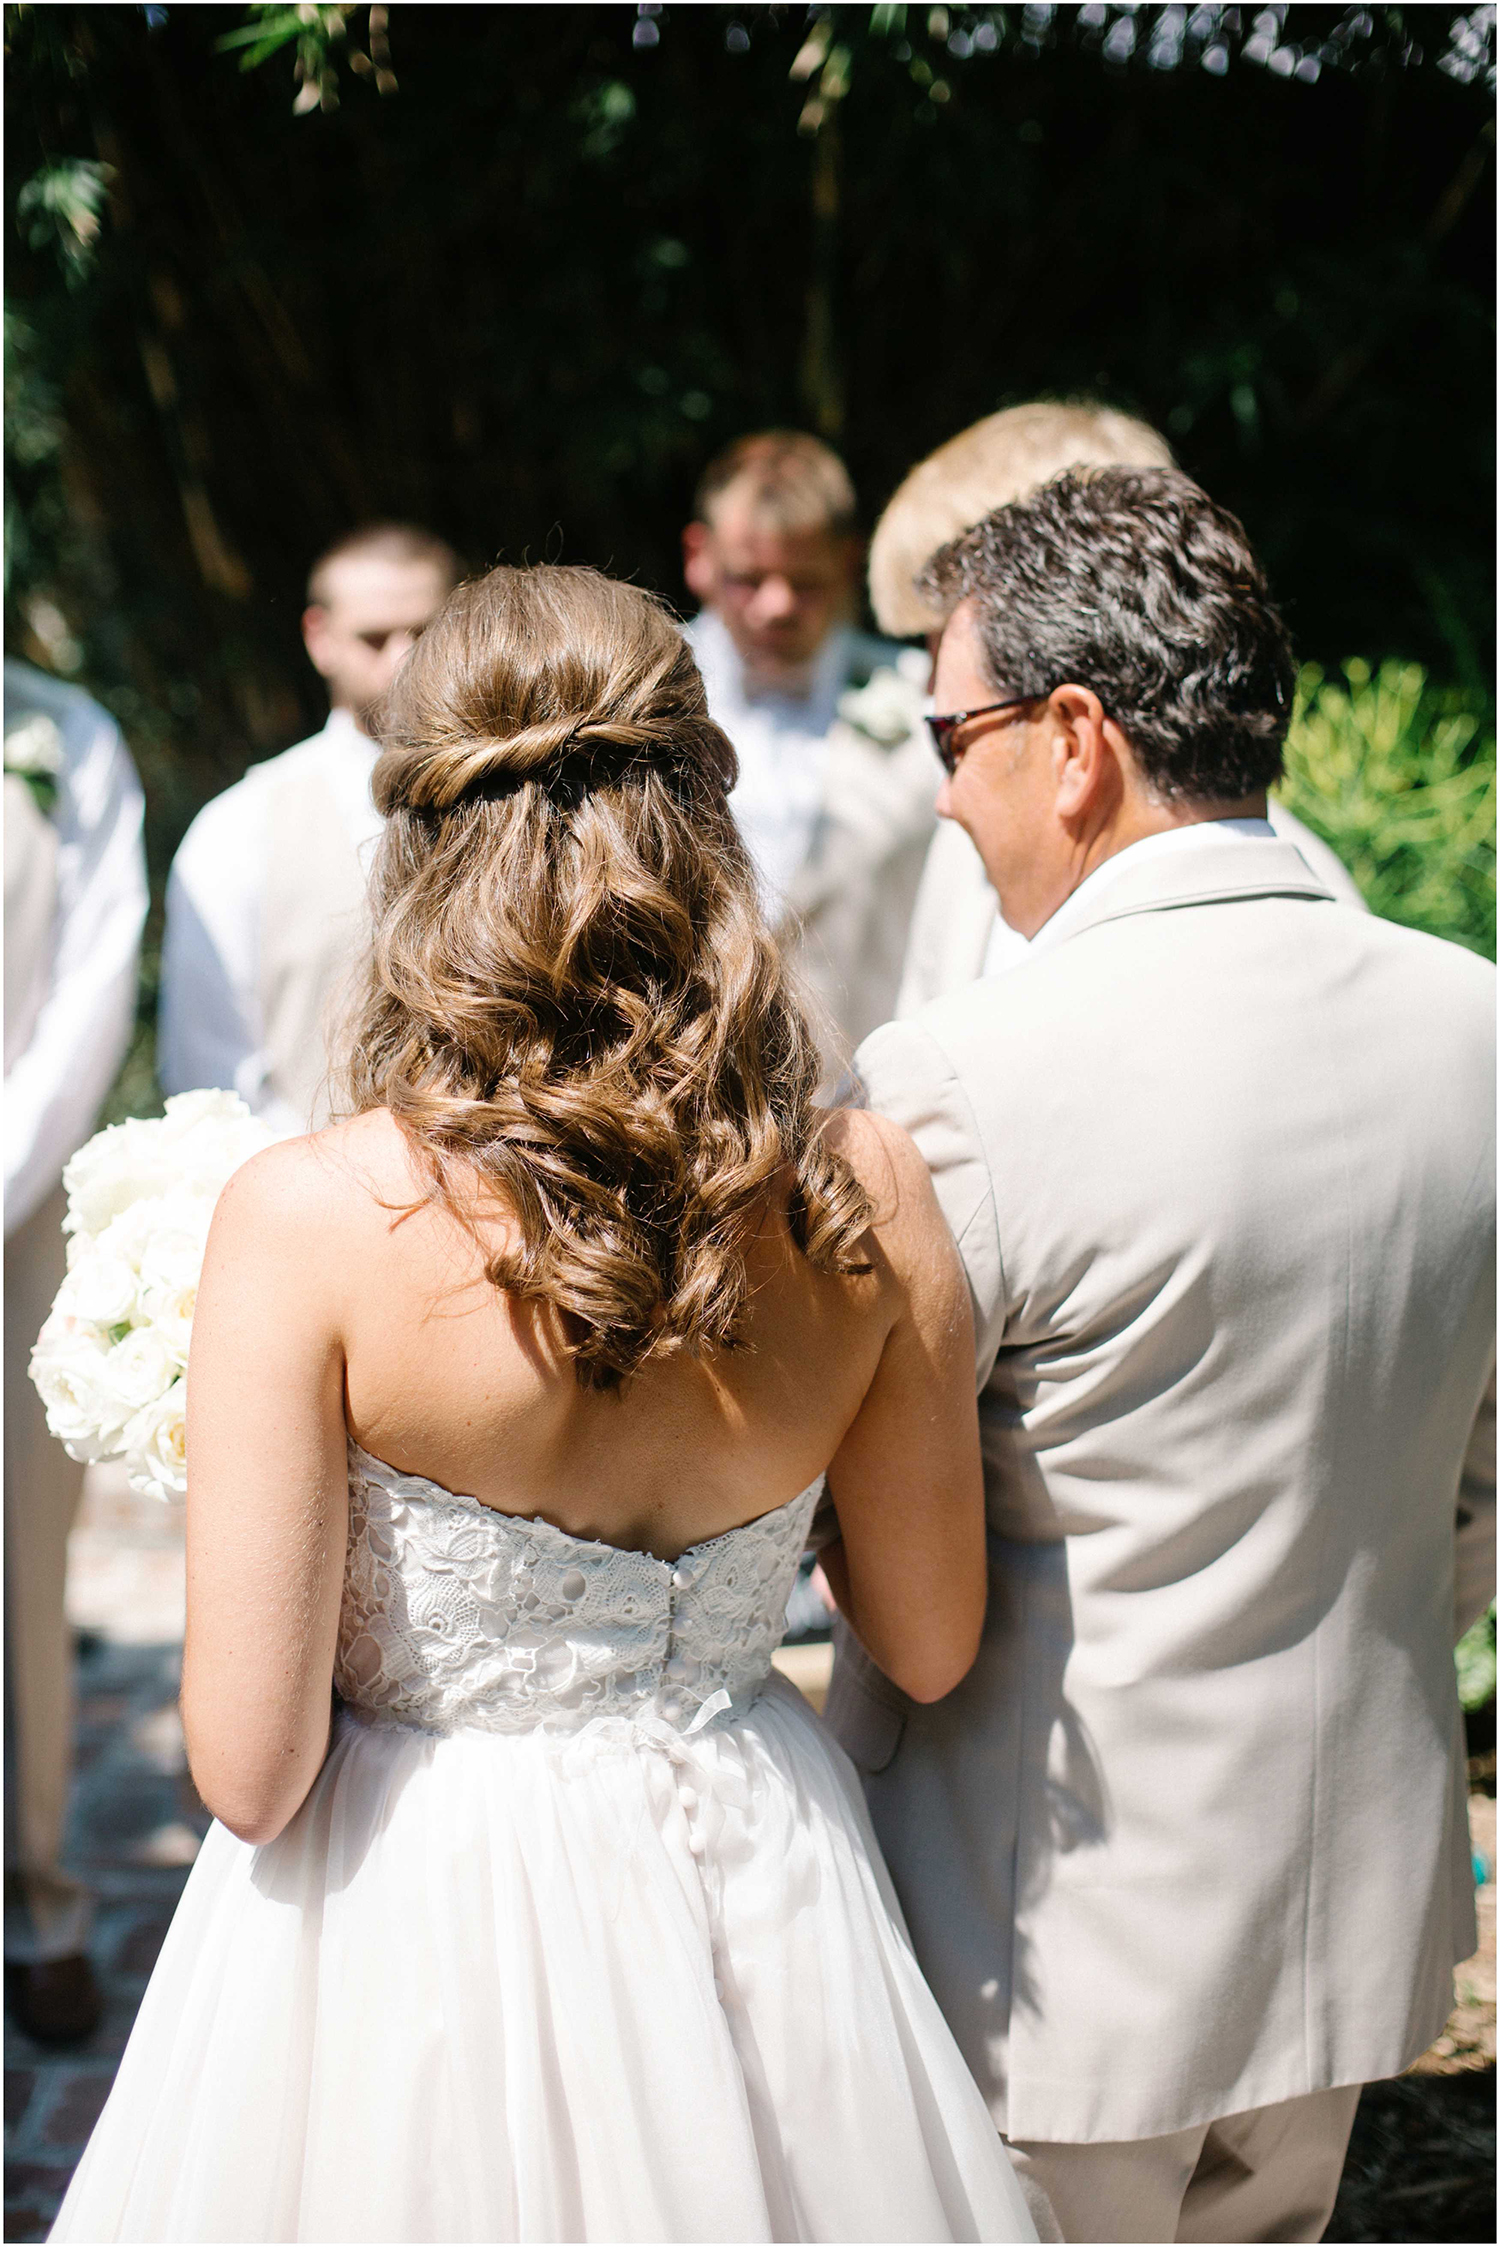 Gulf_Coast_Wedding_Photographer_0008.jpg